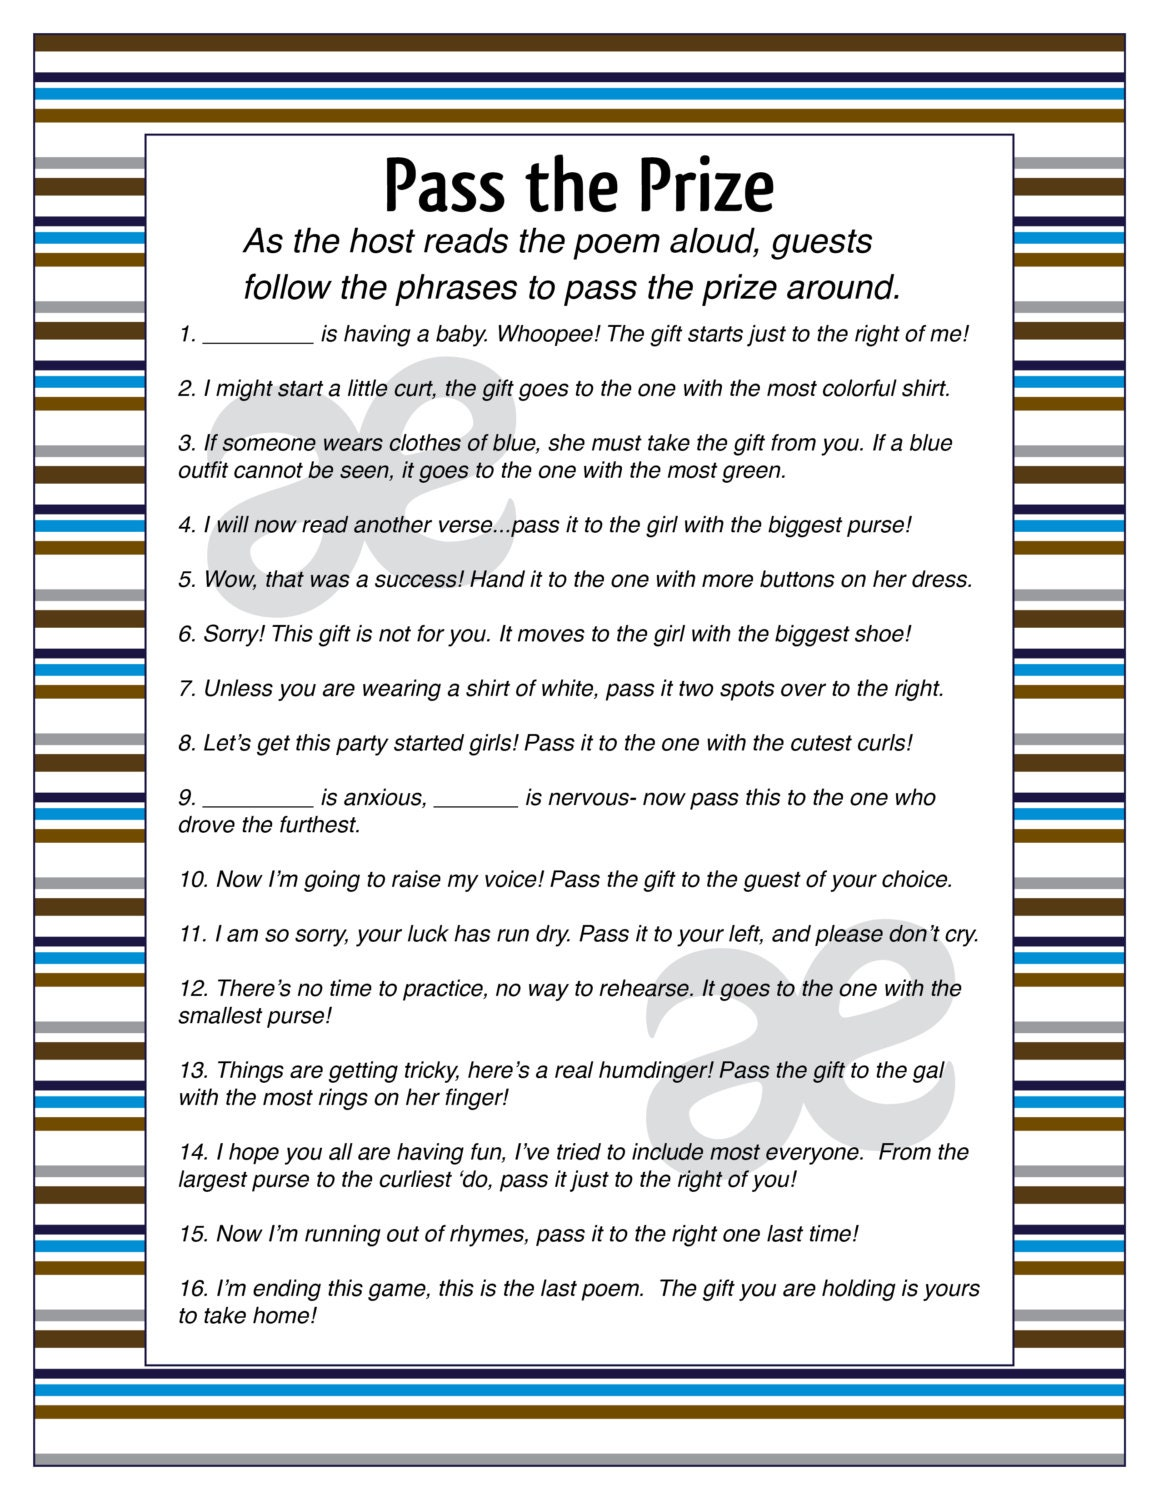 graphic regarding Baby Shower Pass the Prize Rhyme Printable identified as Printable Child Boy Shower Recreation: P the Prize - Fast Down load - Customizable Blue Stripe